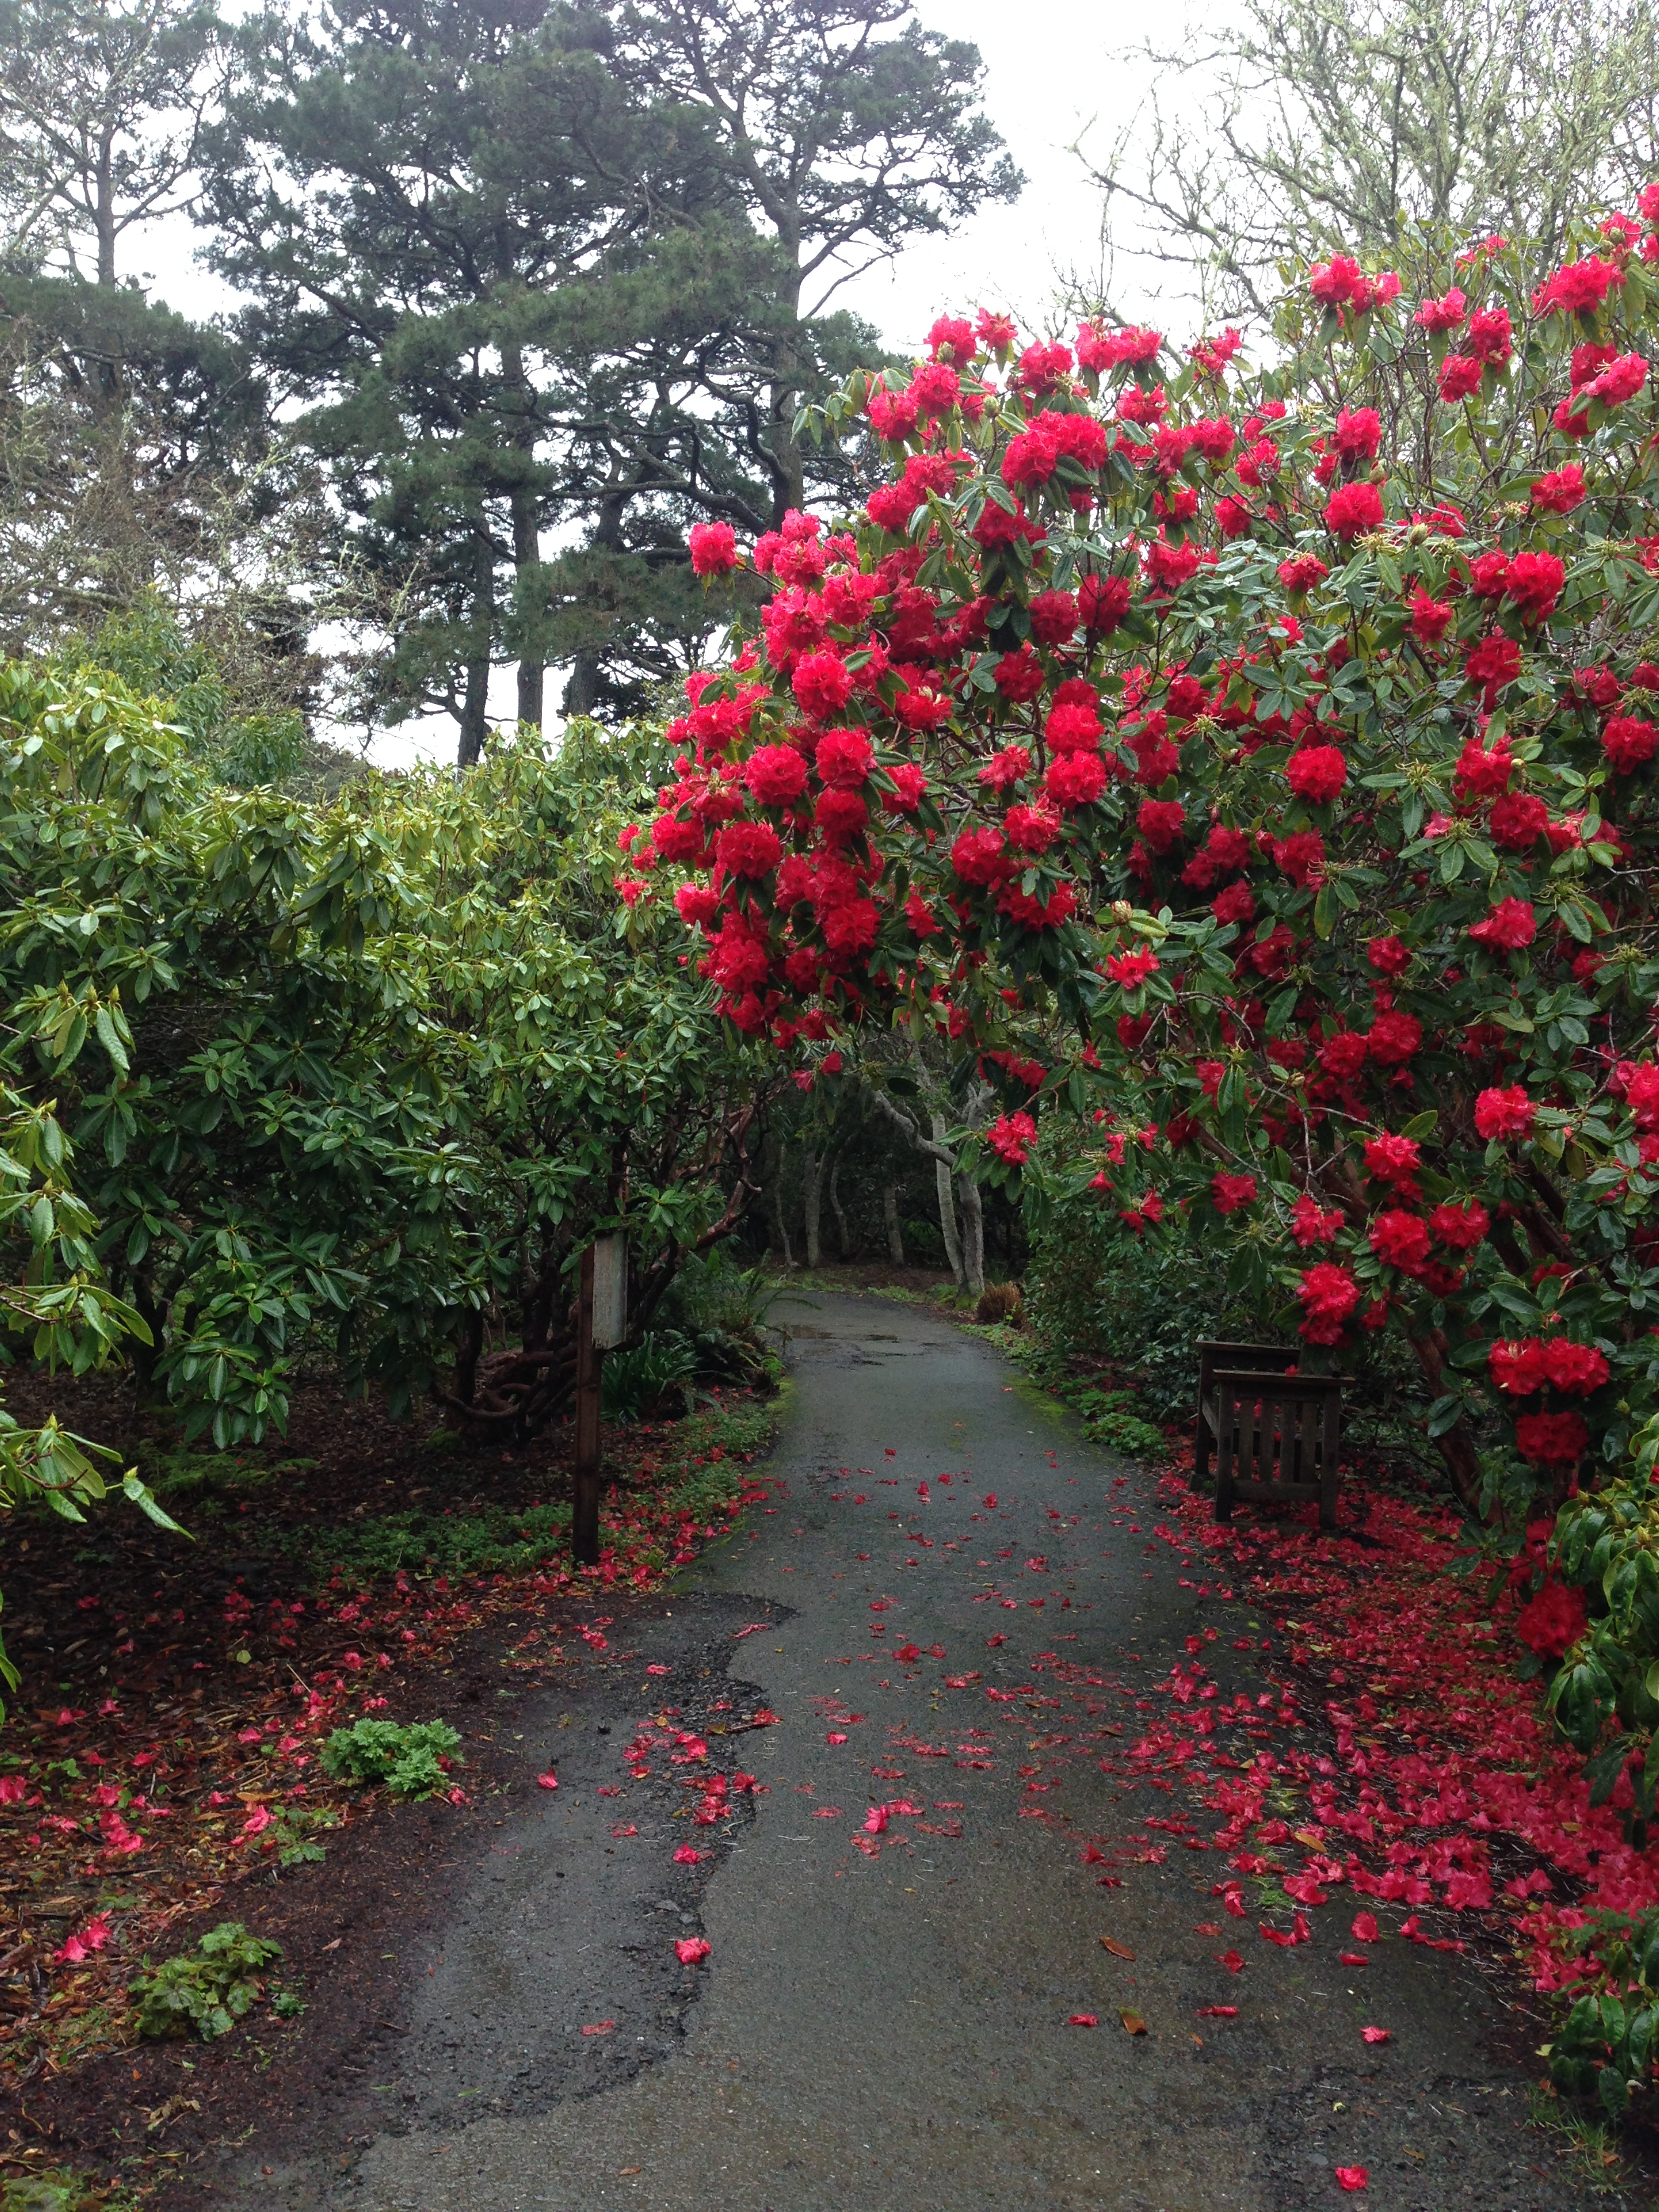 The Mendocino Coast Botanical Gardens are colorful on a rainy day.